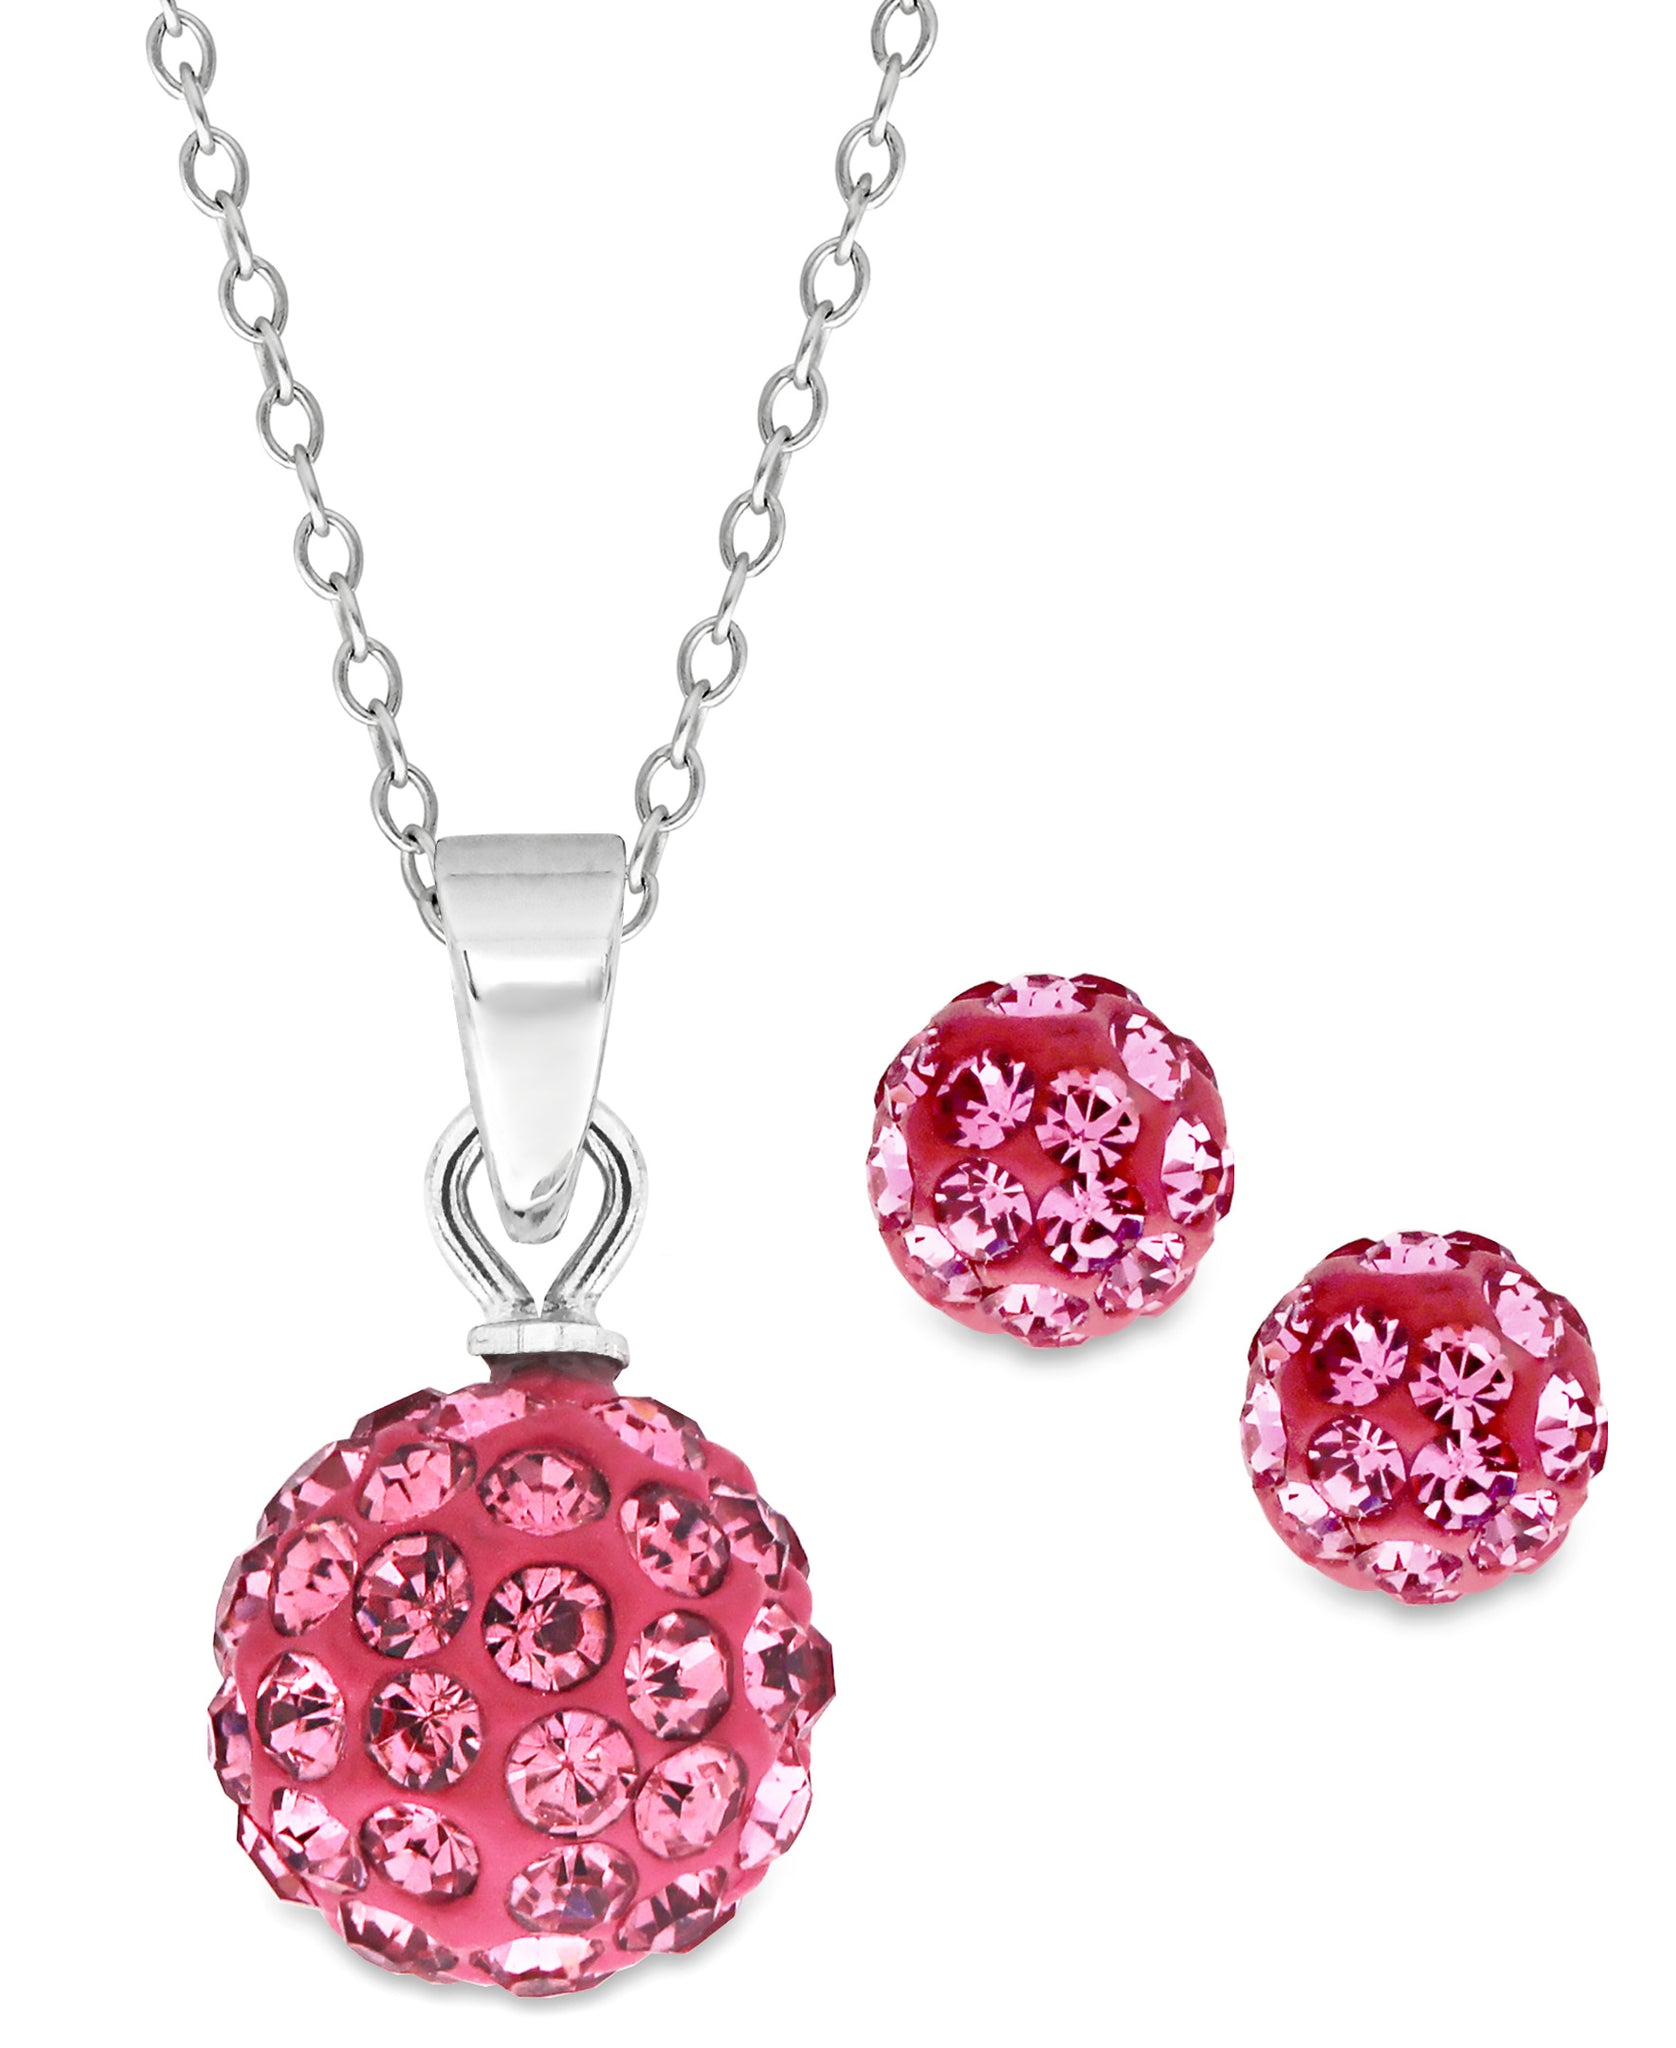 Children's Sterling Silver Crystal Ball Pendant Necklace & Stud Earrings Set - Rhona Sutton Jewellery